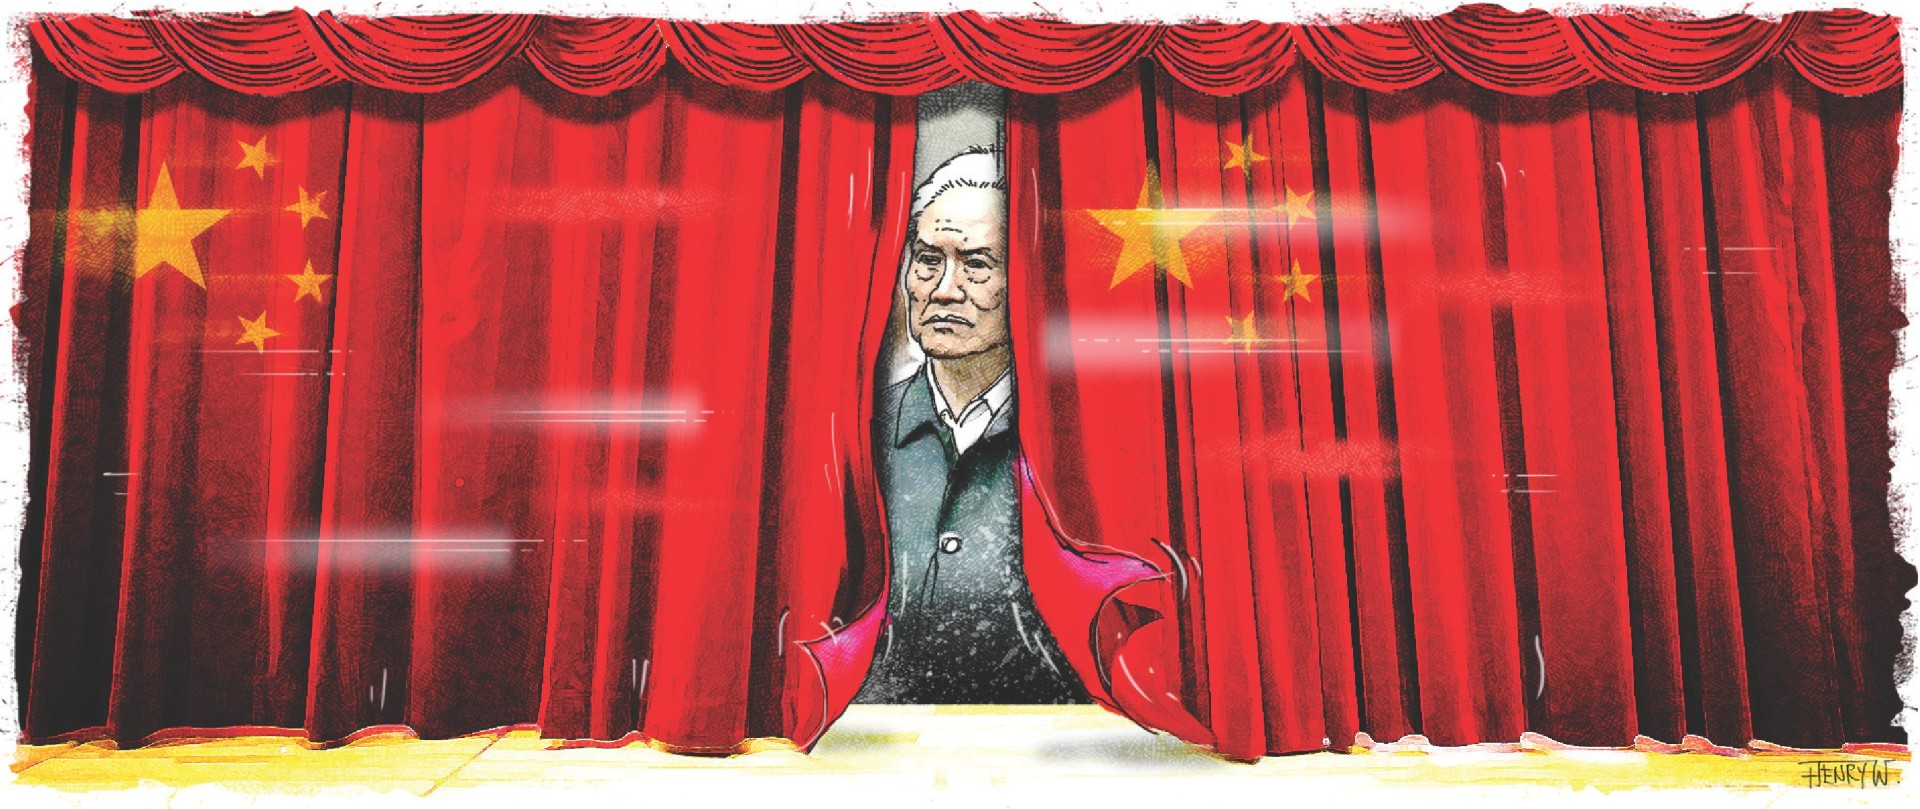 Why was Zhou Yongkang denied a public trial like Bo Xilai's? | South